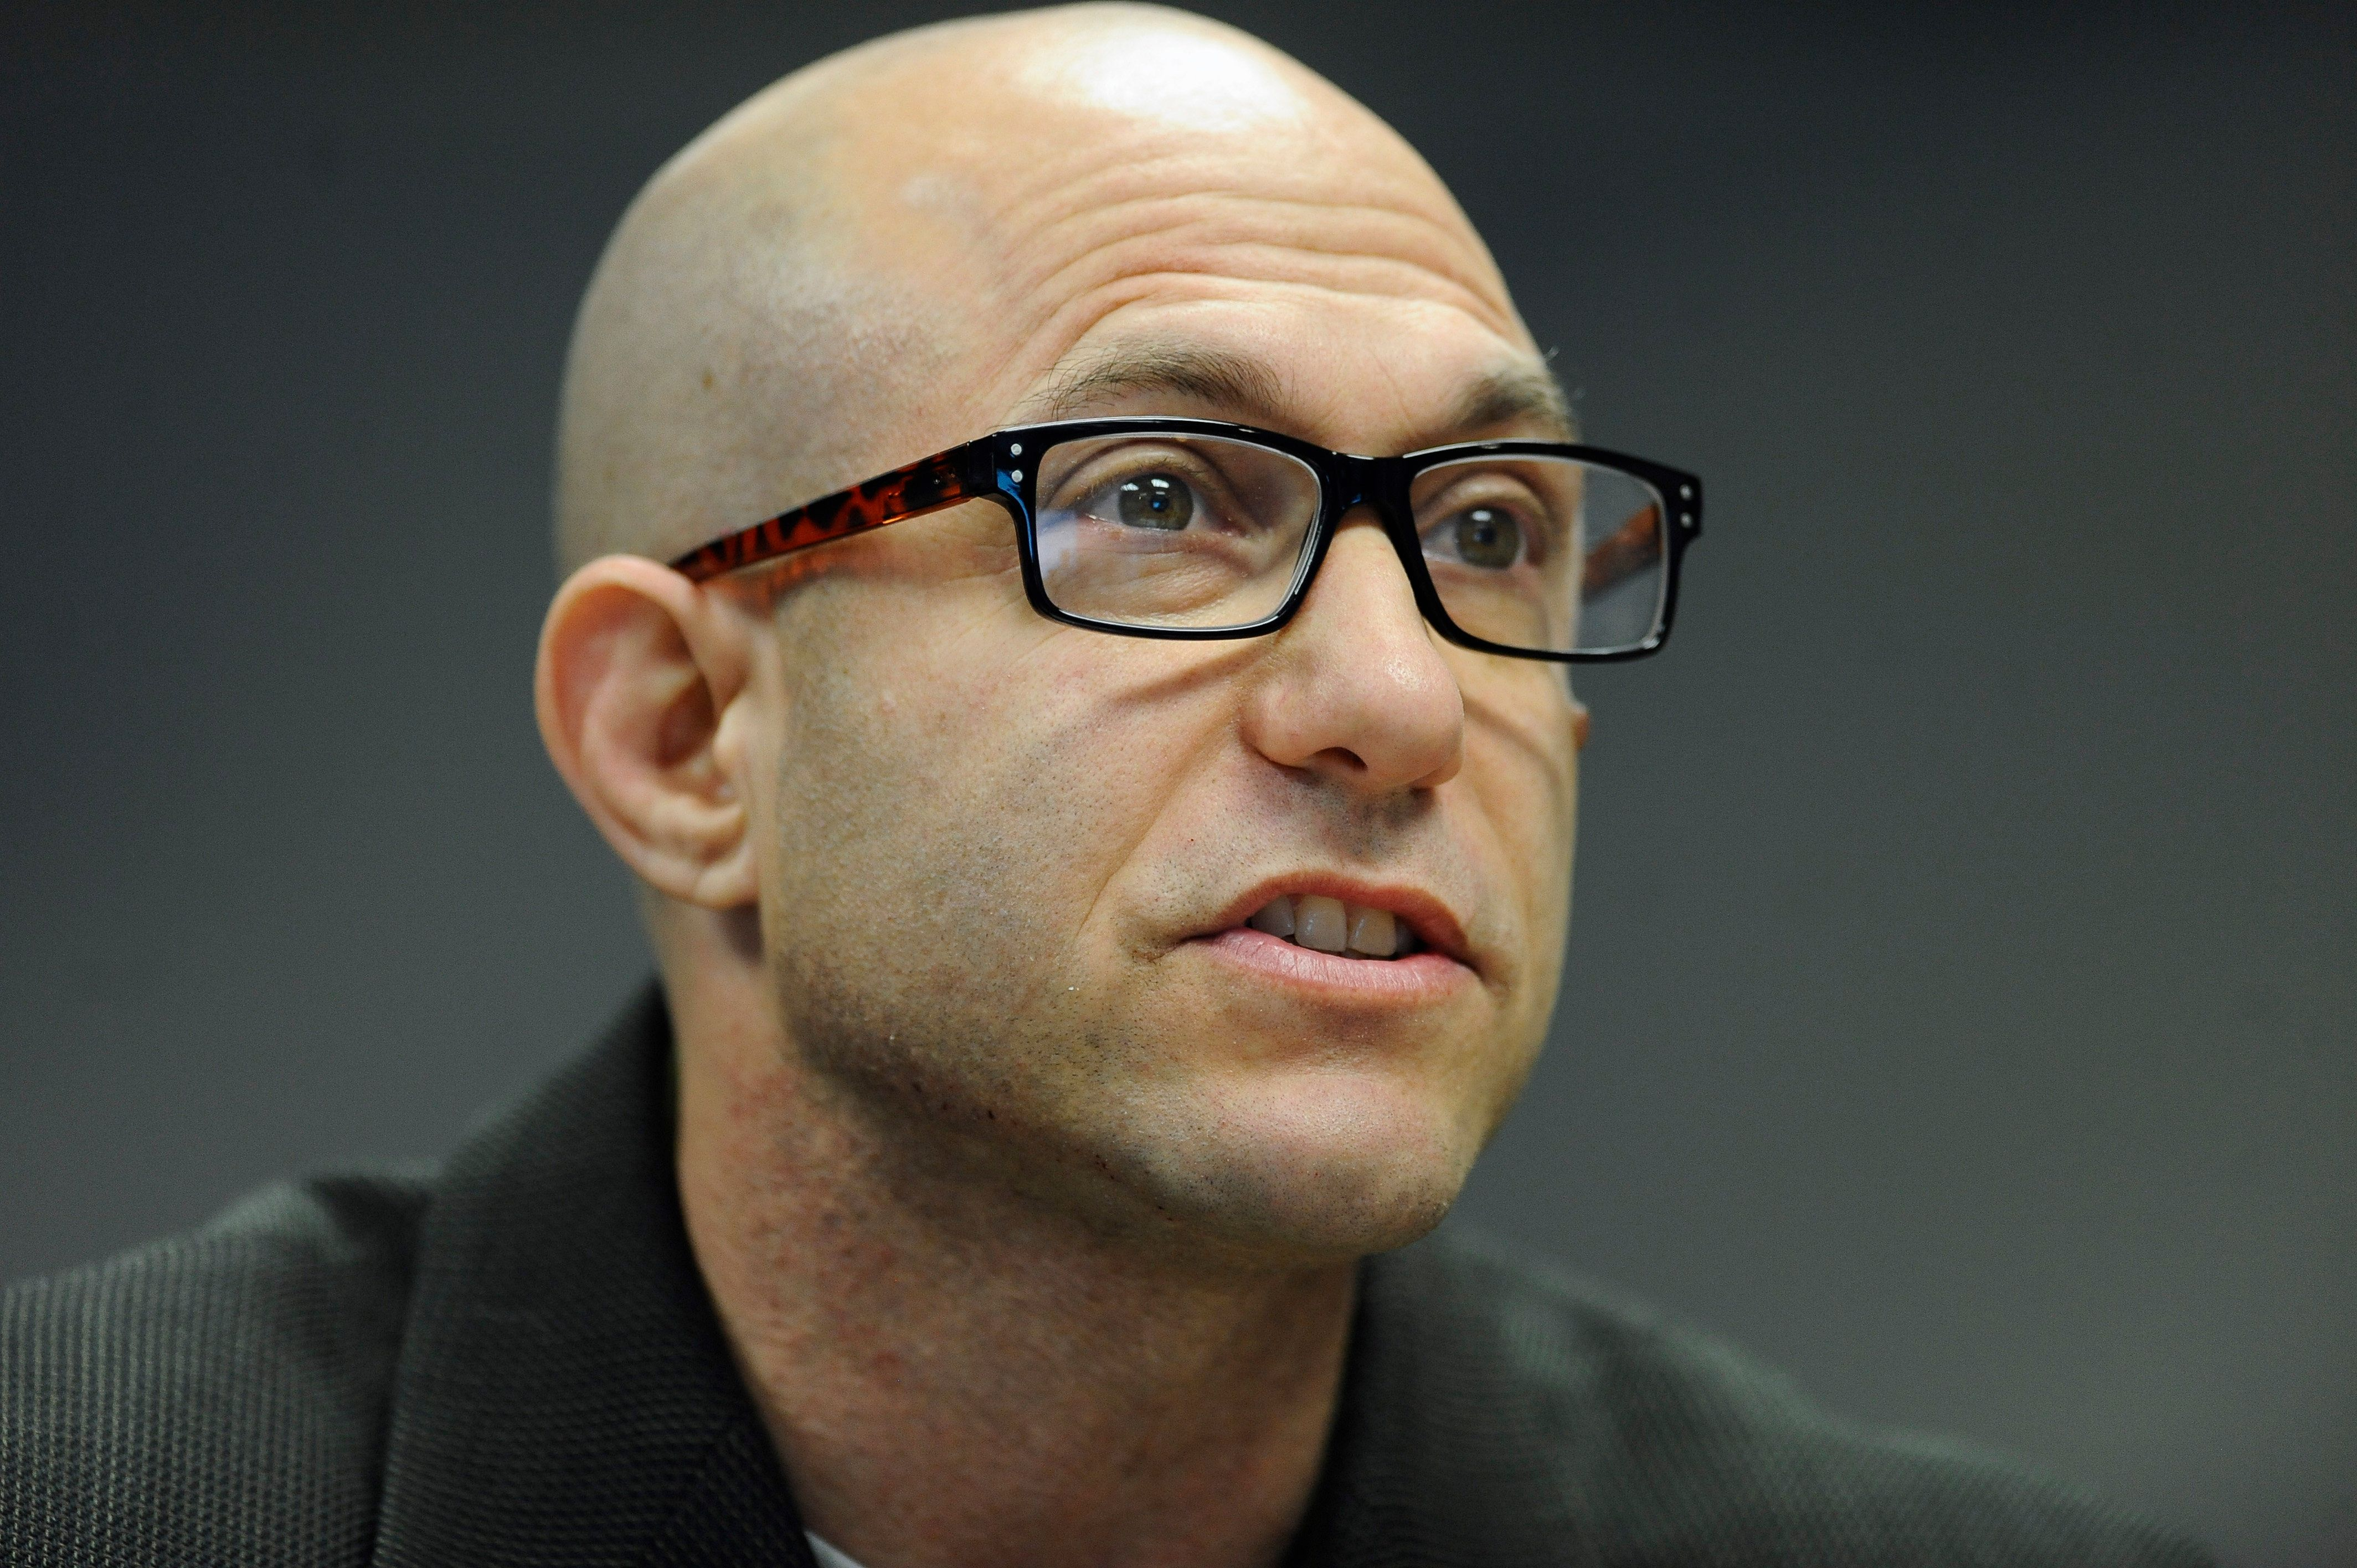 Jeremy Richman father of Sandy Hook Elementary school shooting victim Avielle Richman addresses the Sandy Hook Advisory Commission, Friday, Nov. 14, 2014, in Newtown, Conn. The parents of two children killed made presentations on ways to better address mental health, school safety and gun violence prevention. (AP Photo/Jessica Hill)